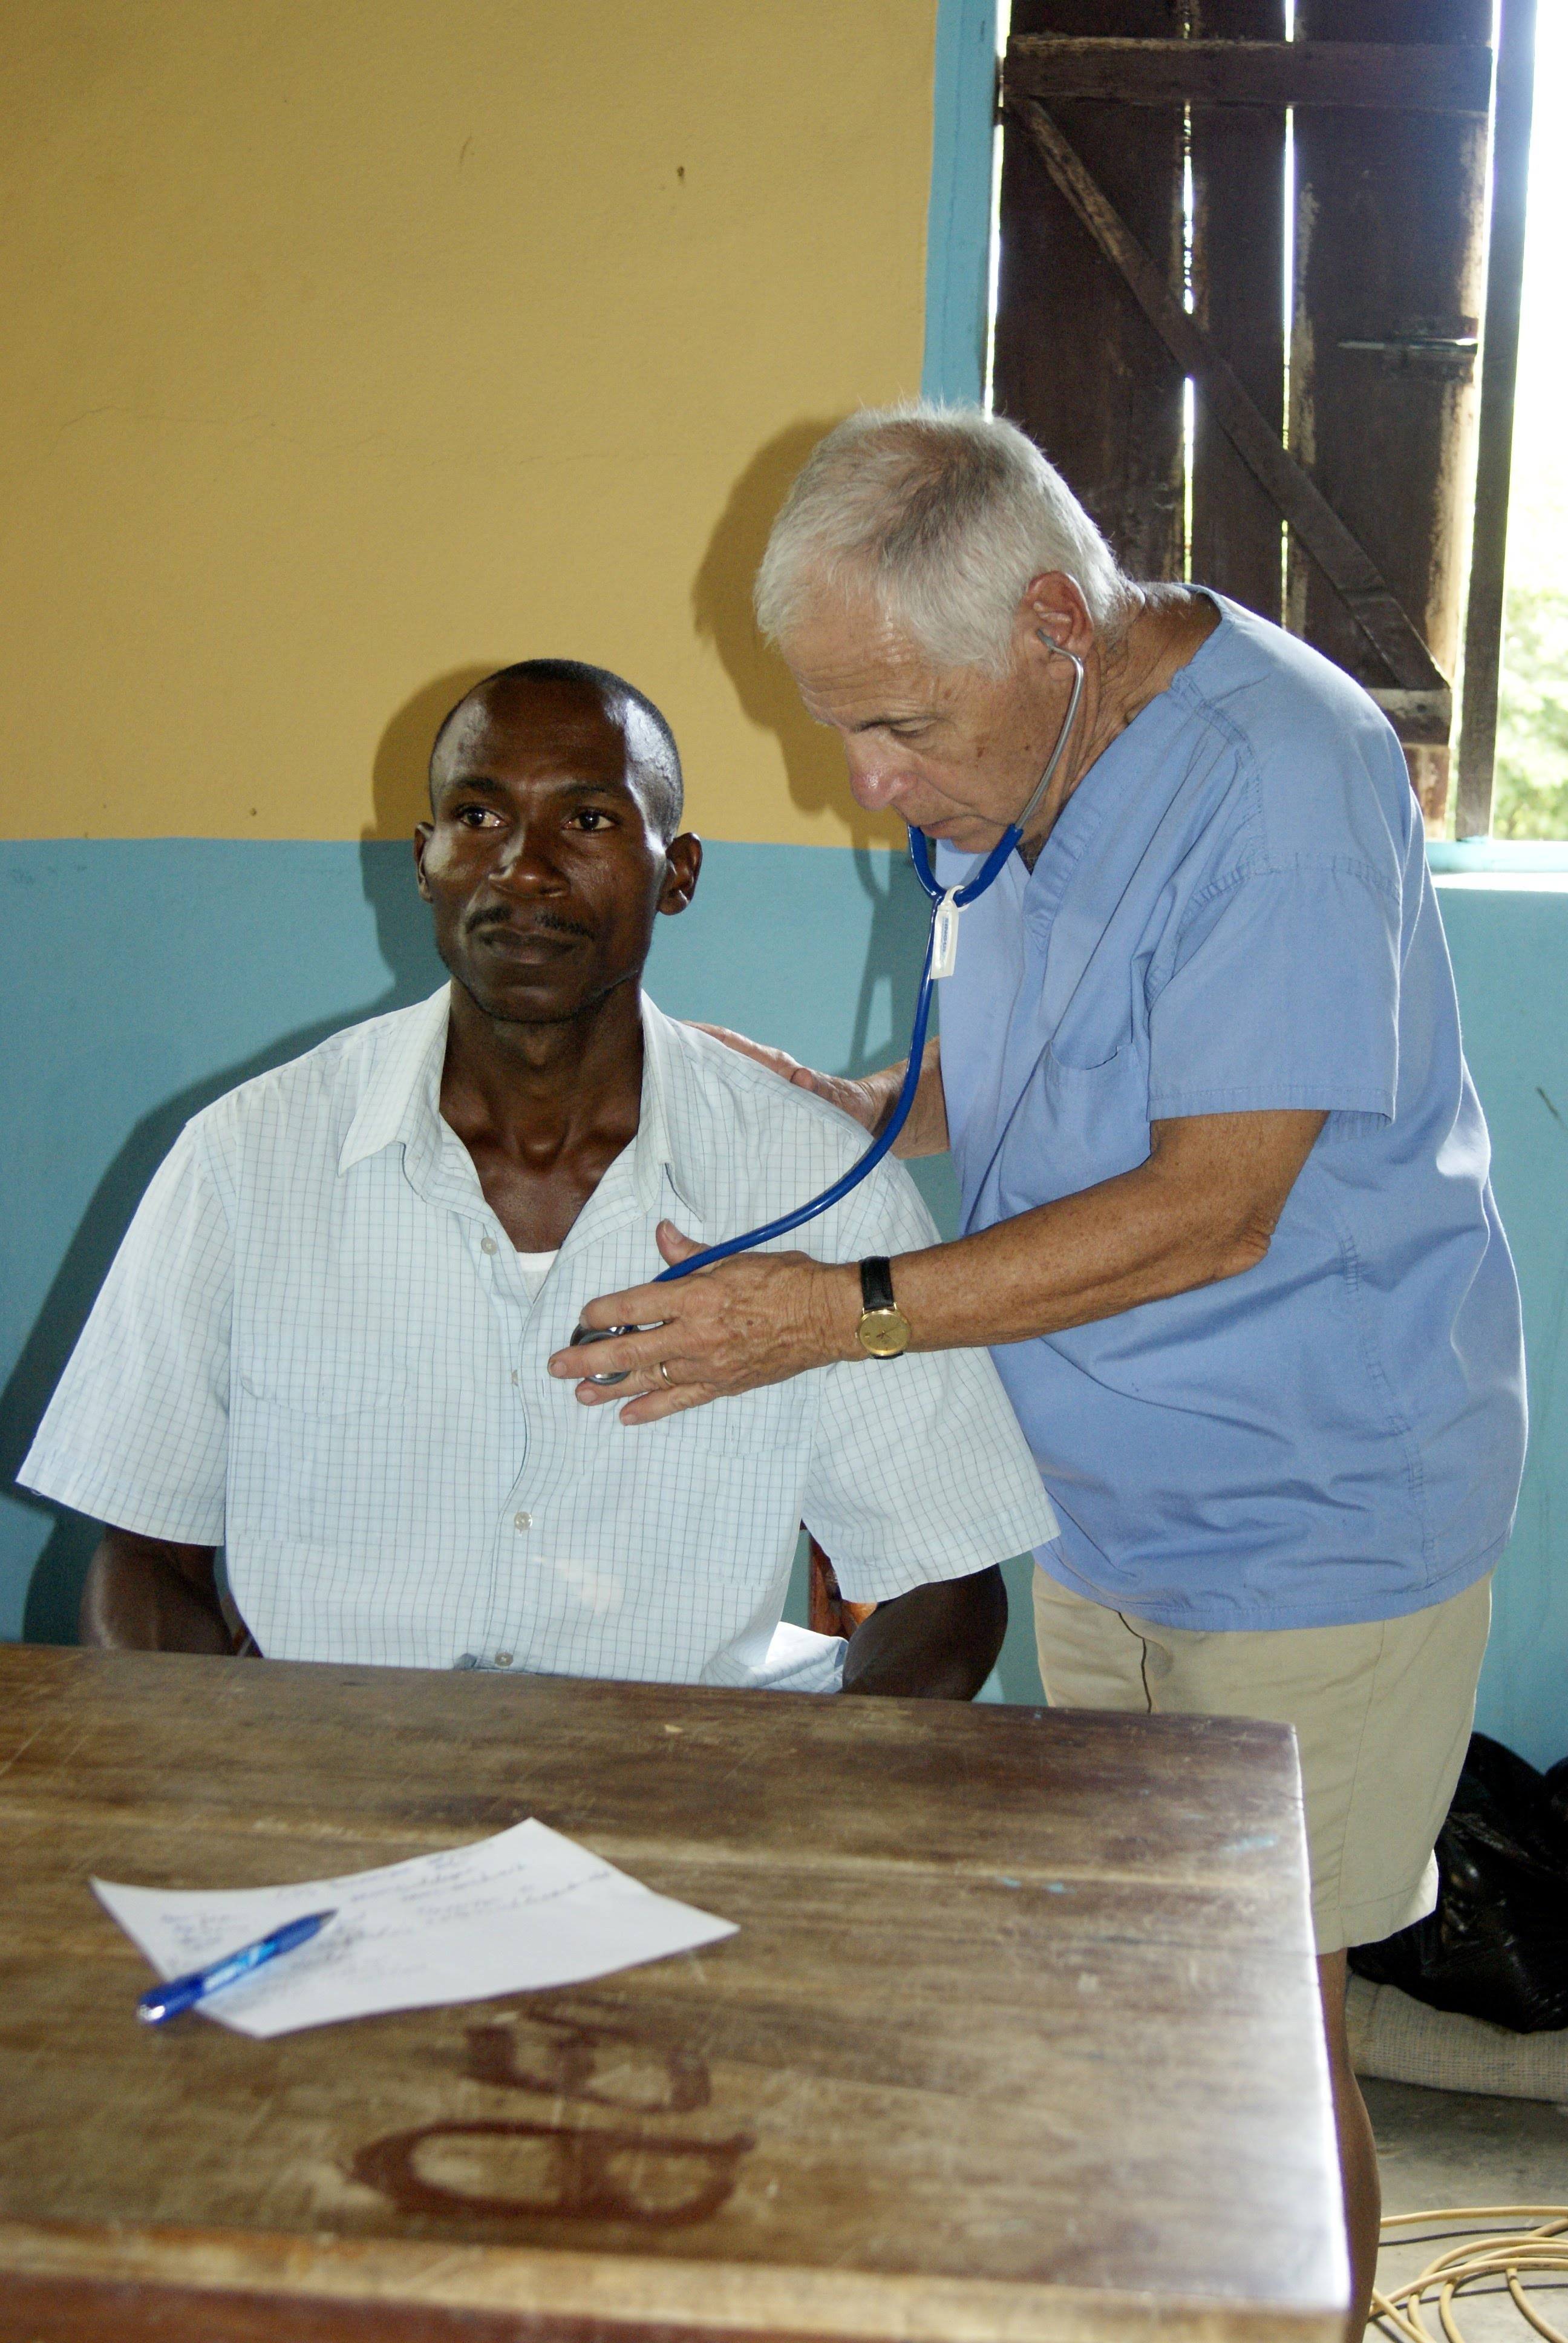 Accomplishments of Medical Missionaries